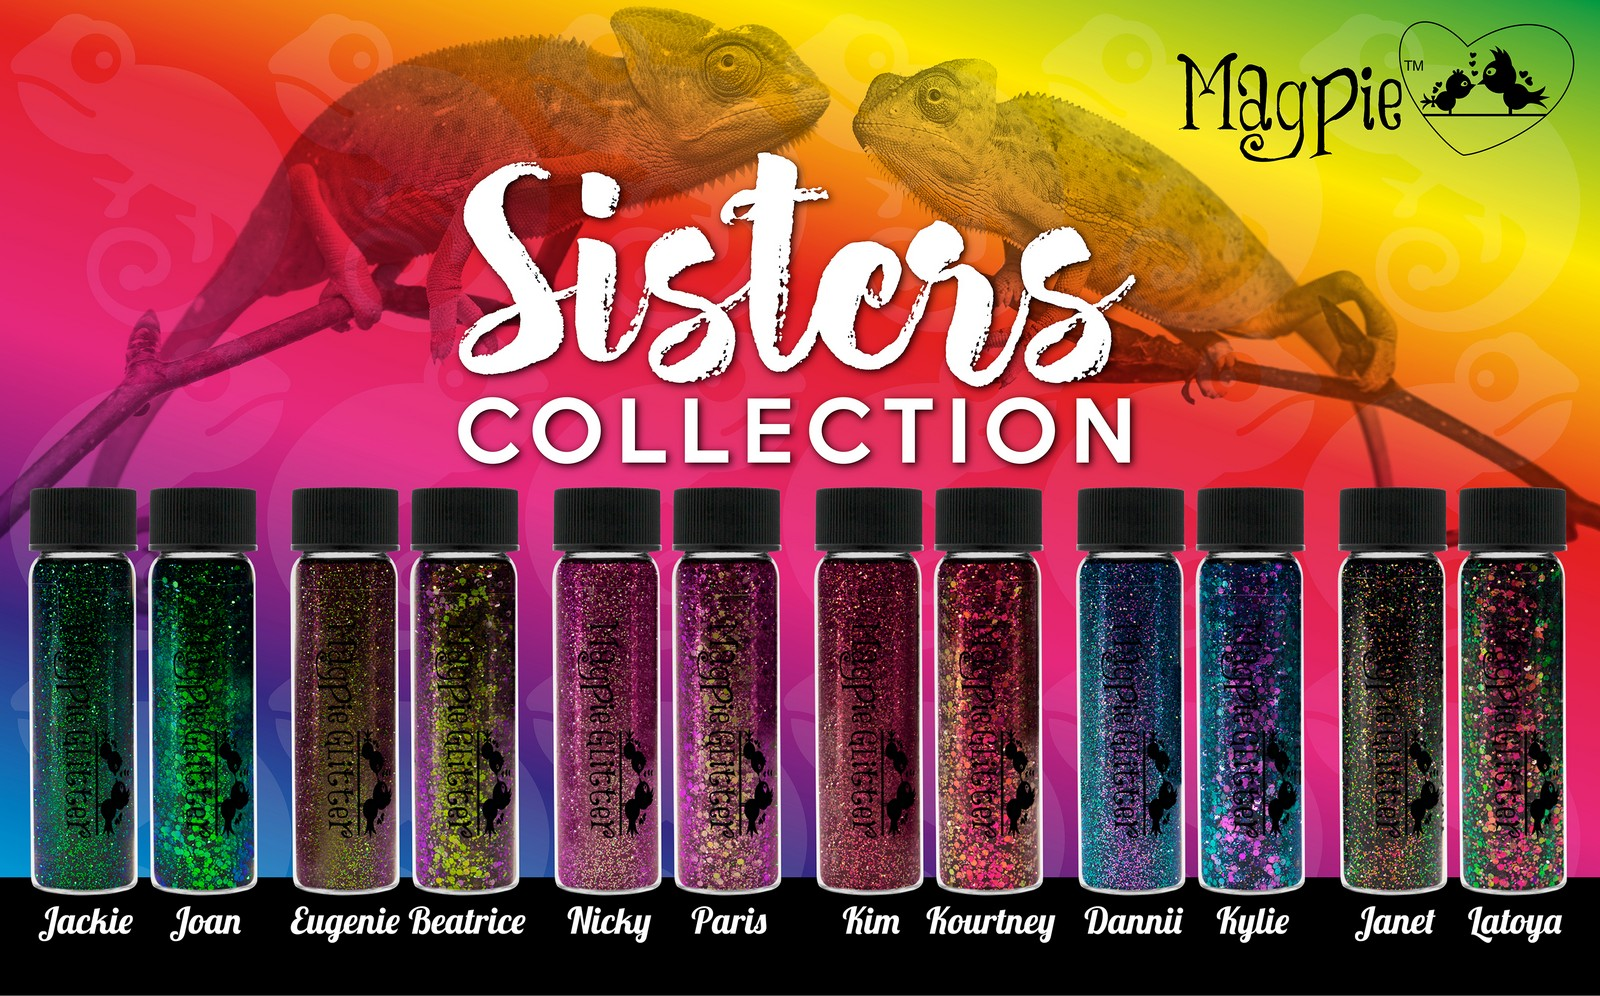 Magpie - Glitter - SISTER COLLECTION